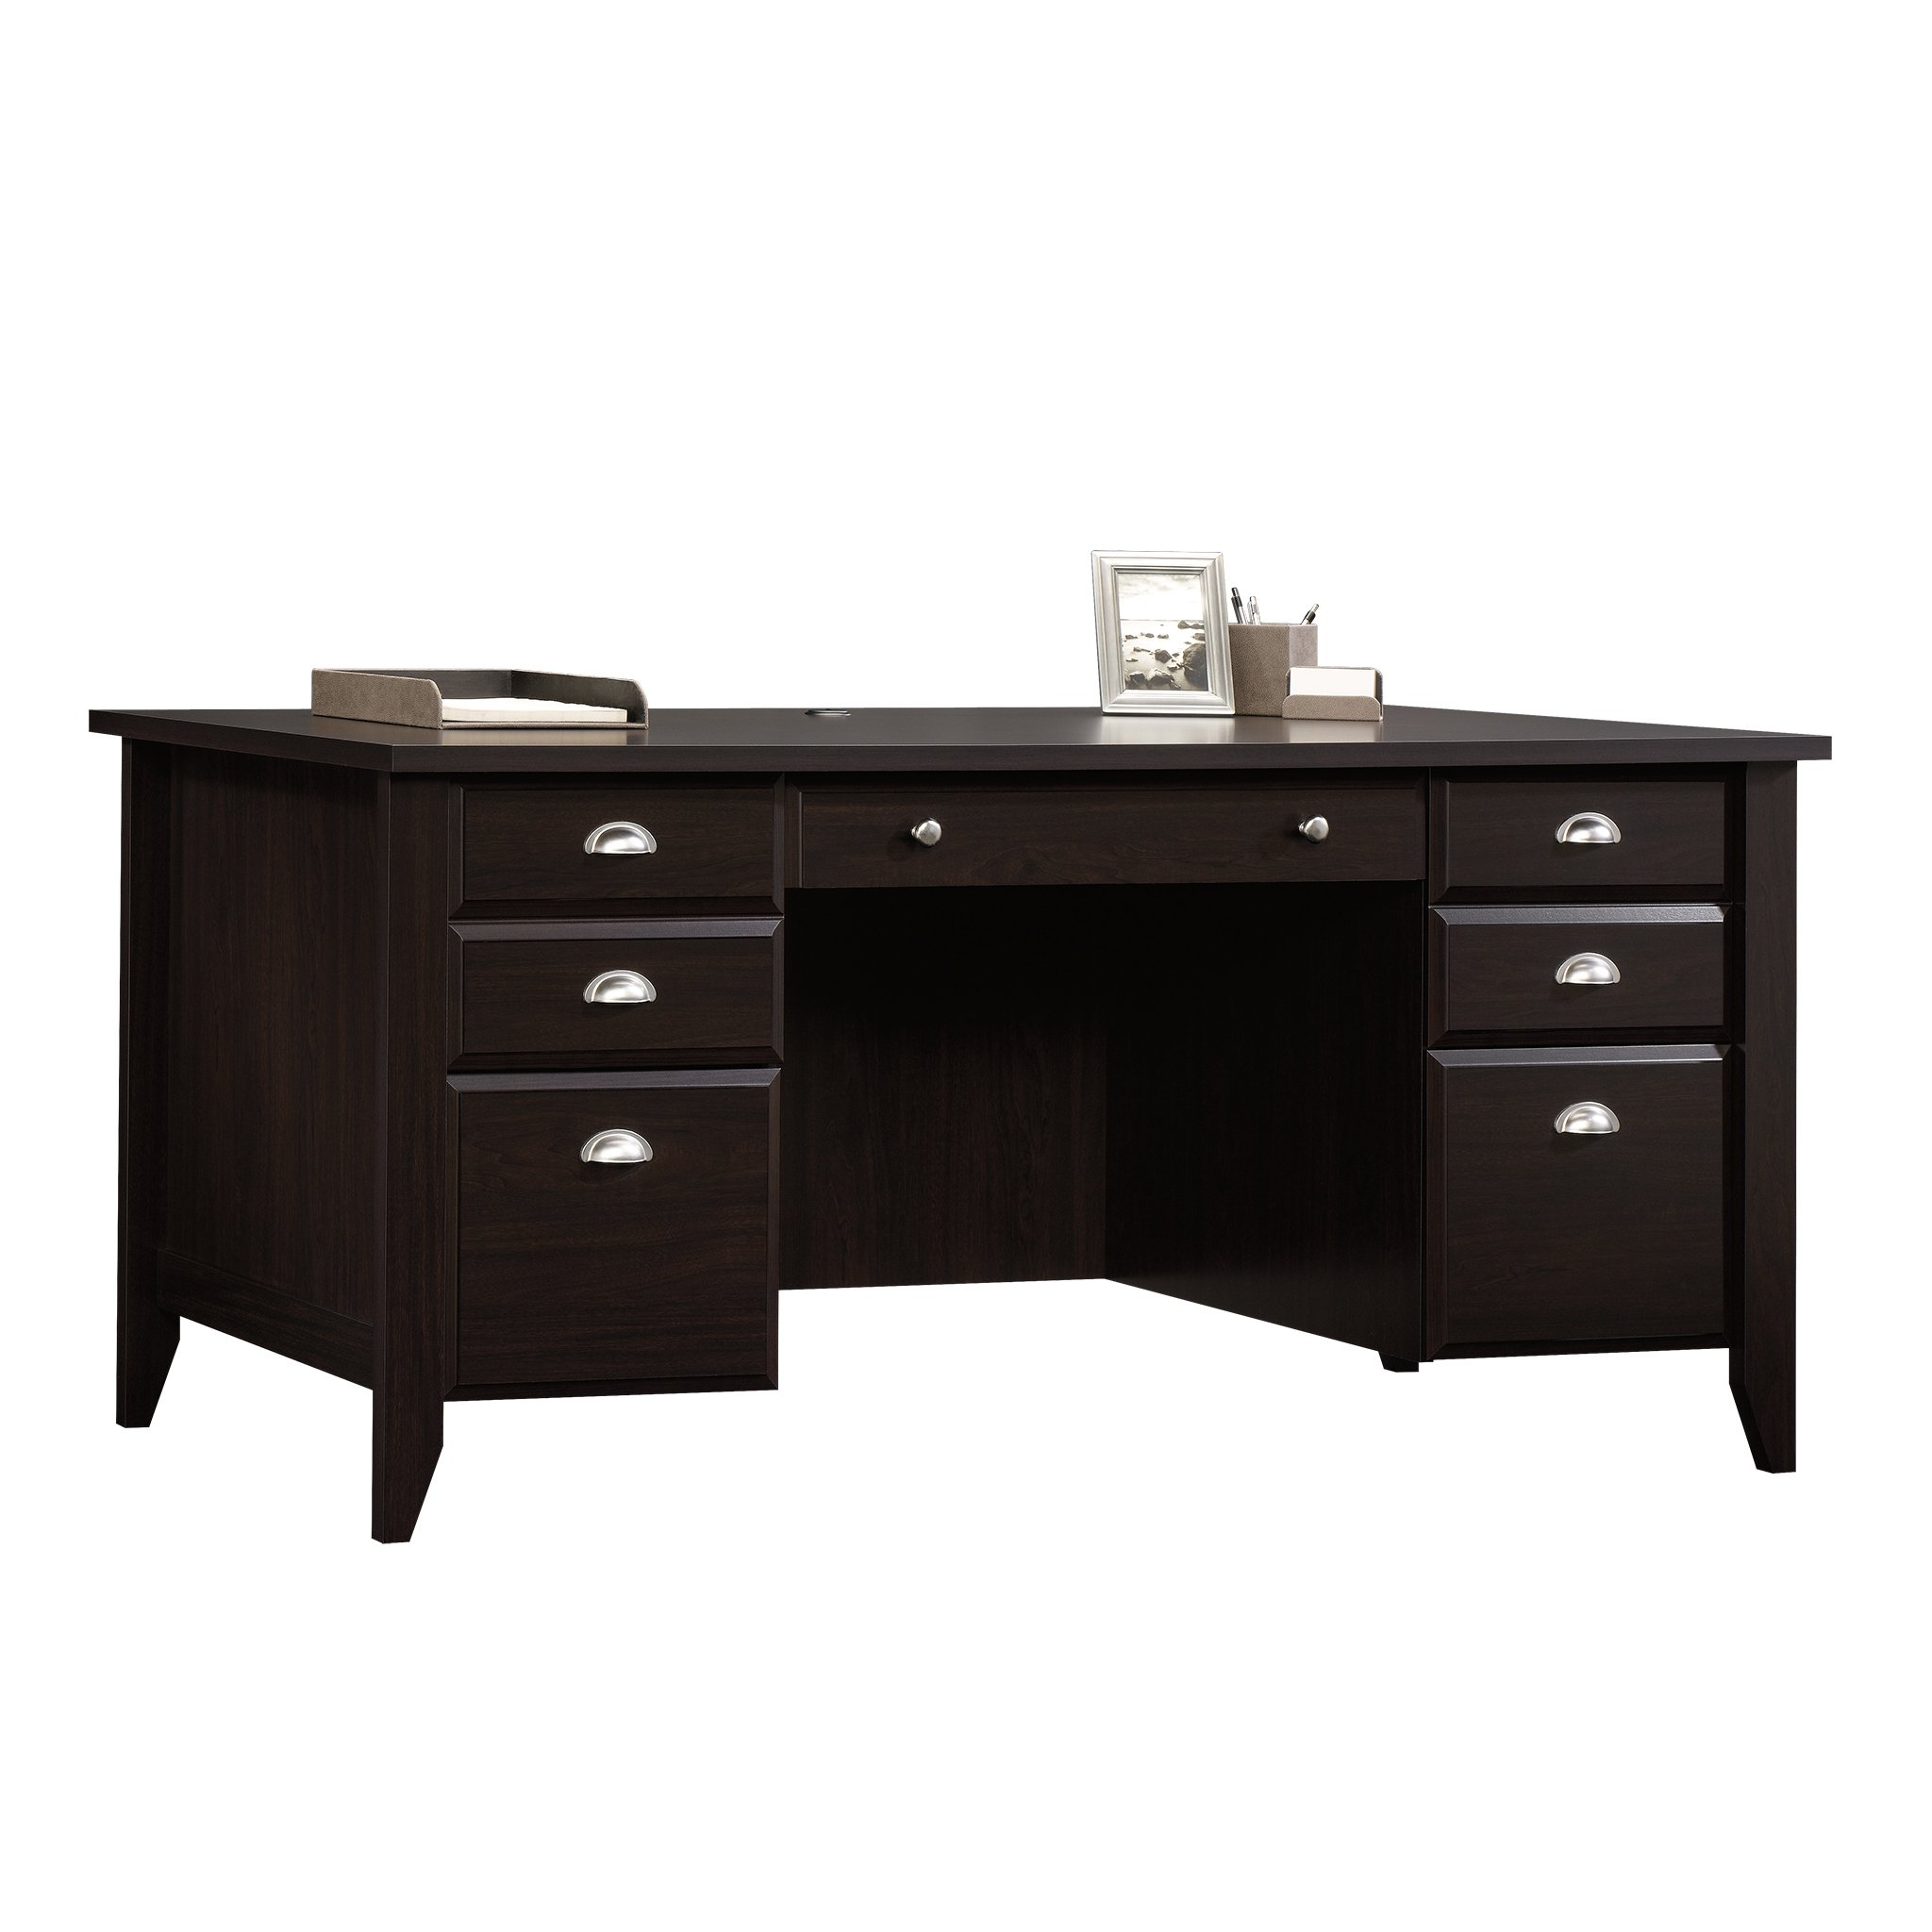 Sauder shoal creek executive desk in jamocha wood - Sauder Shoal Creek Executive Desk Jamocha Wood